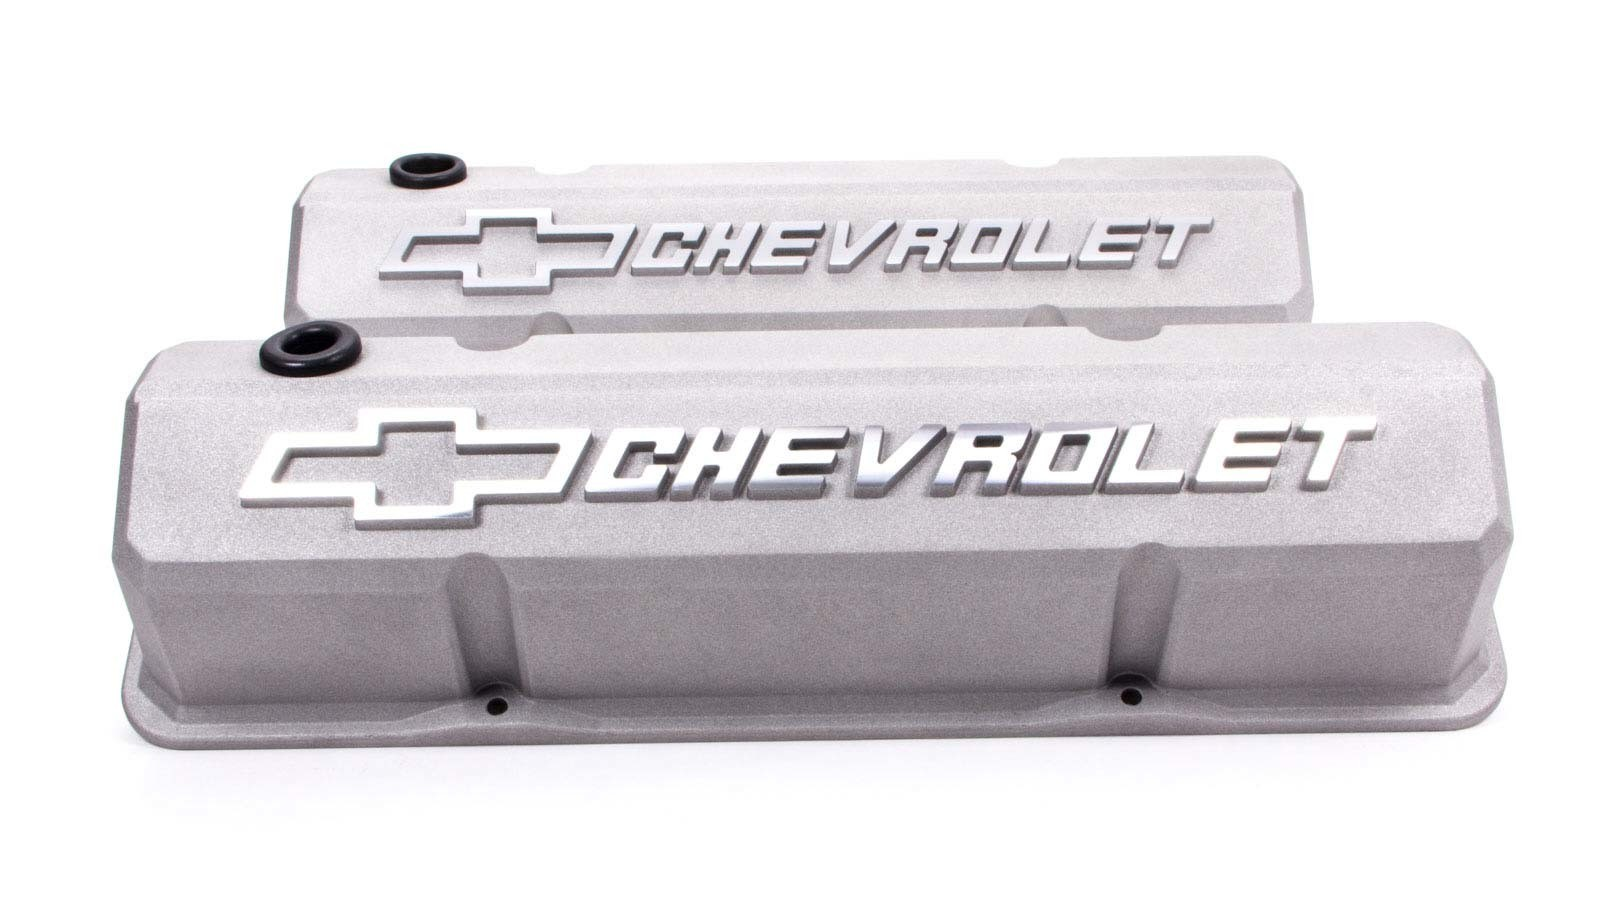 Proform 141-925 Valve Cover, Slant-Edge, Tall, Baffled, Breather Hole, Raised Chevrolet Bowtie Logo, Aluminum, Crinkle Gray, Small Block Chevy, Pair